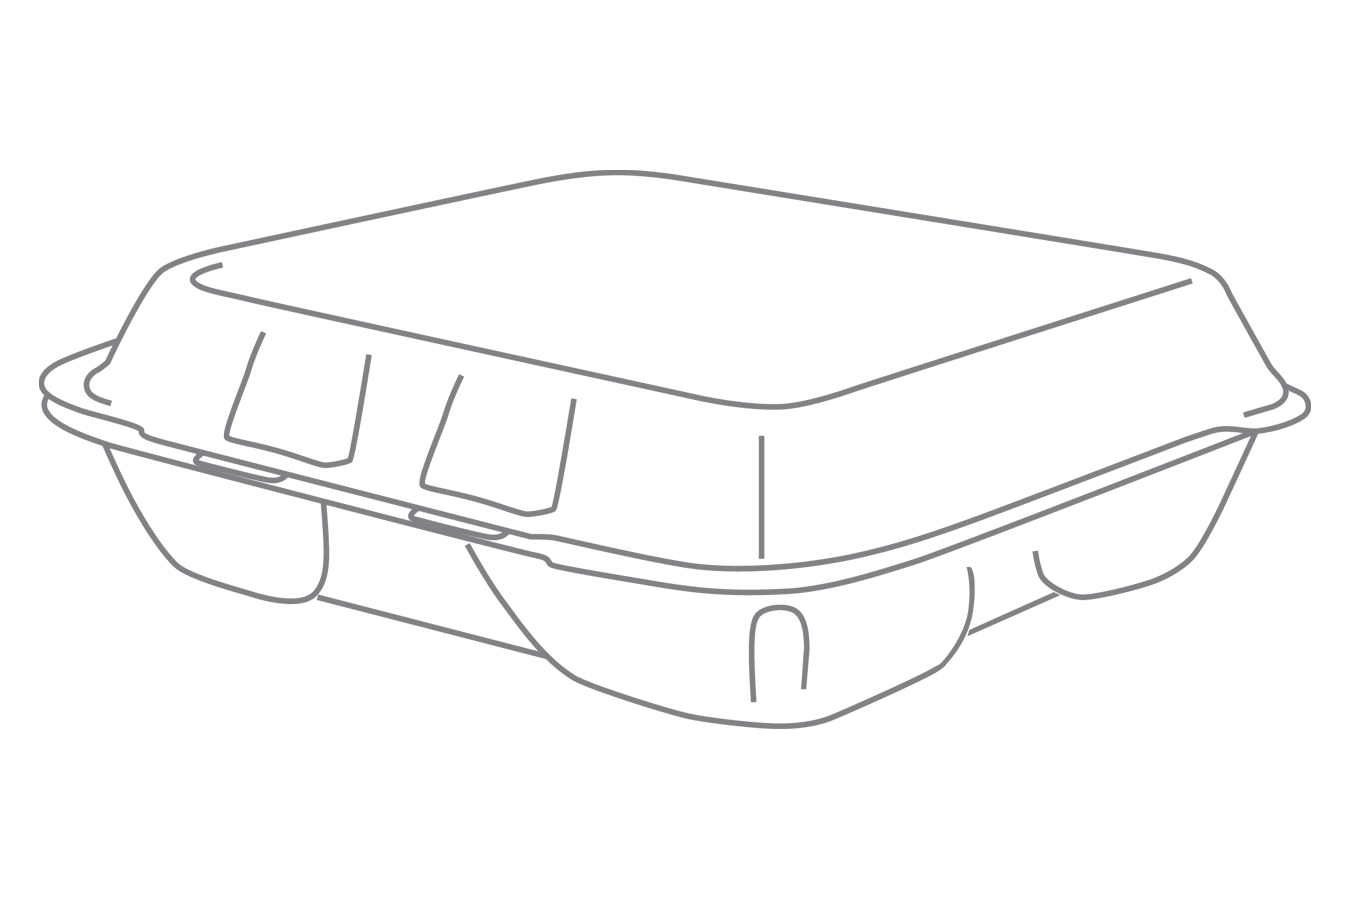 Line art illustration of white non-vented hinged foam takeout disposable container